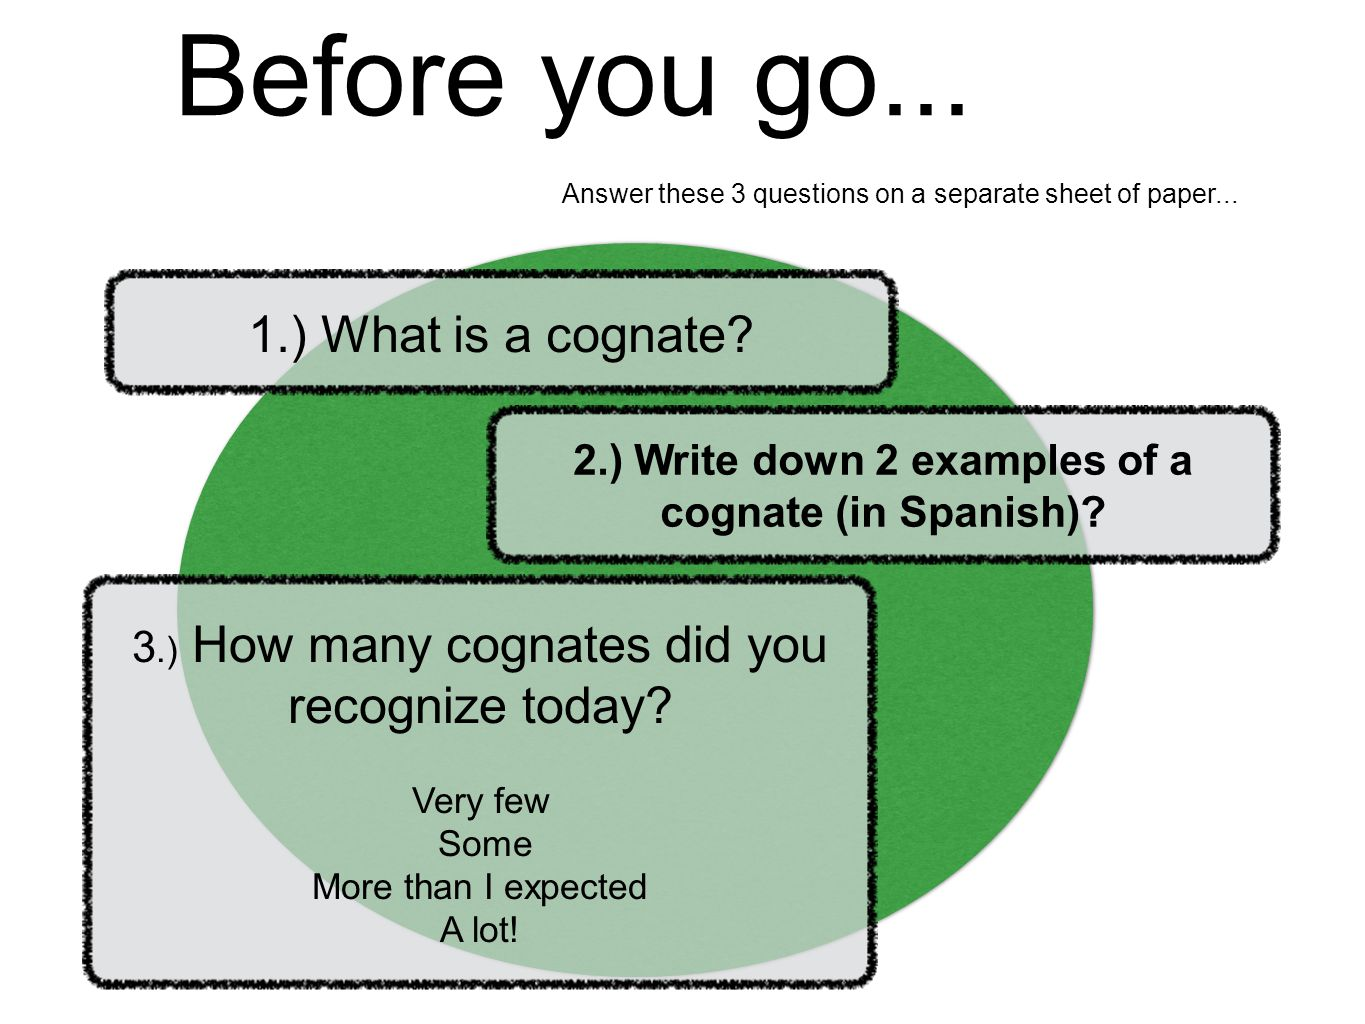 2.) Write down 2 examples of a cognate (in Spanish)